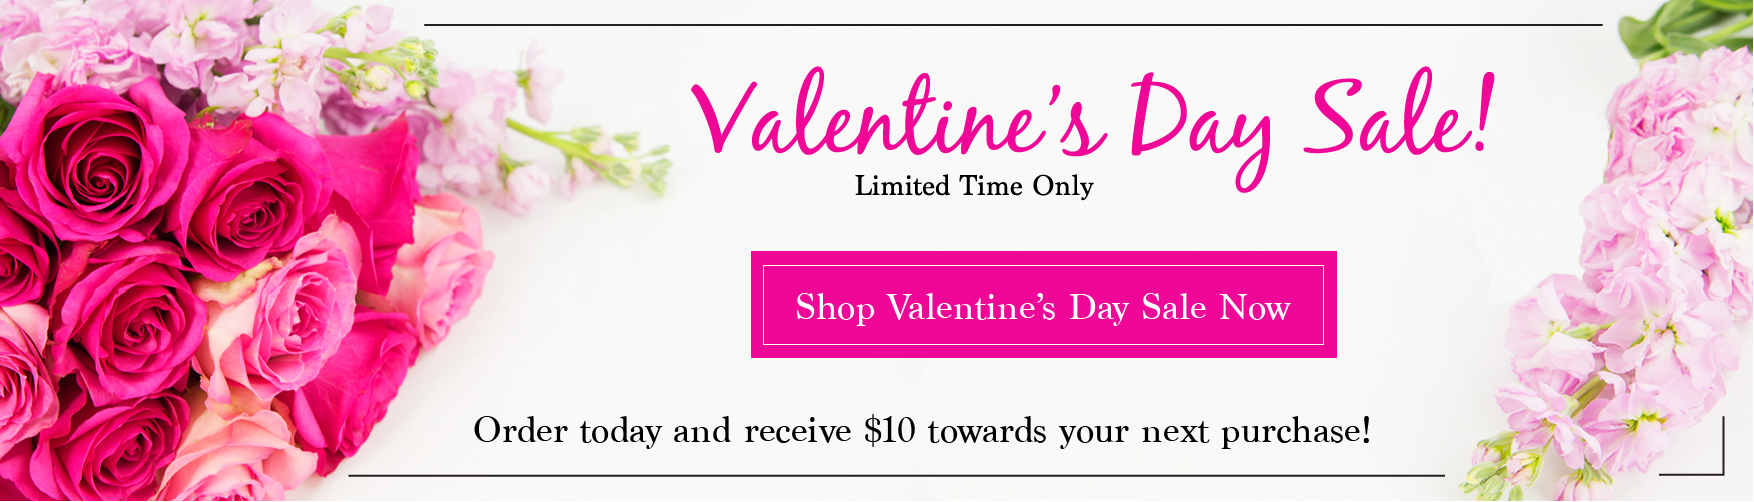 KaBloom Homepage Banner - Vday 2016 $10 off your next purchase